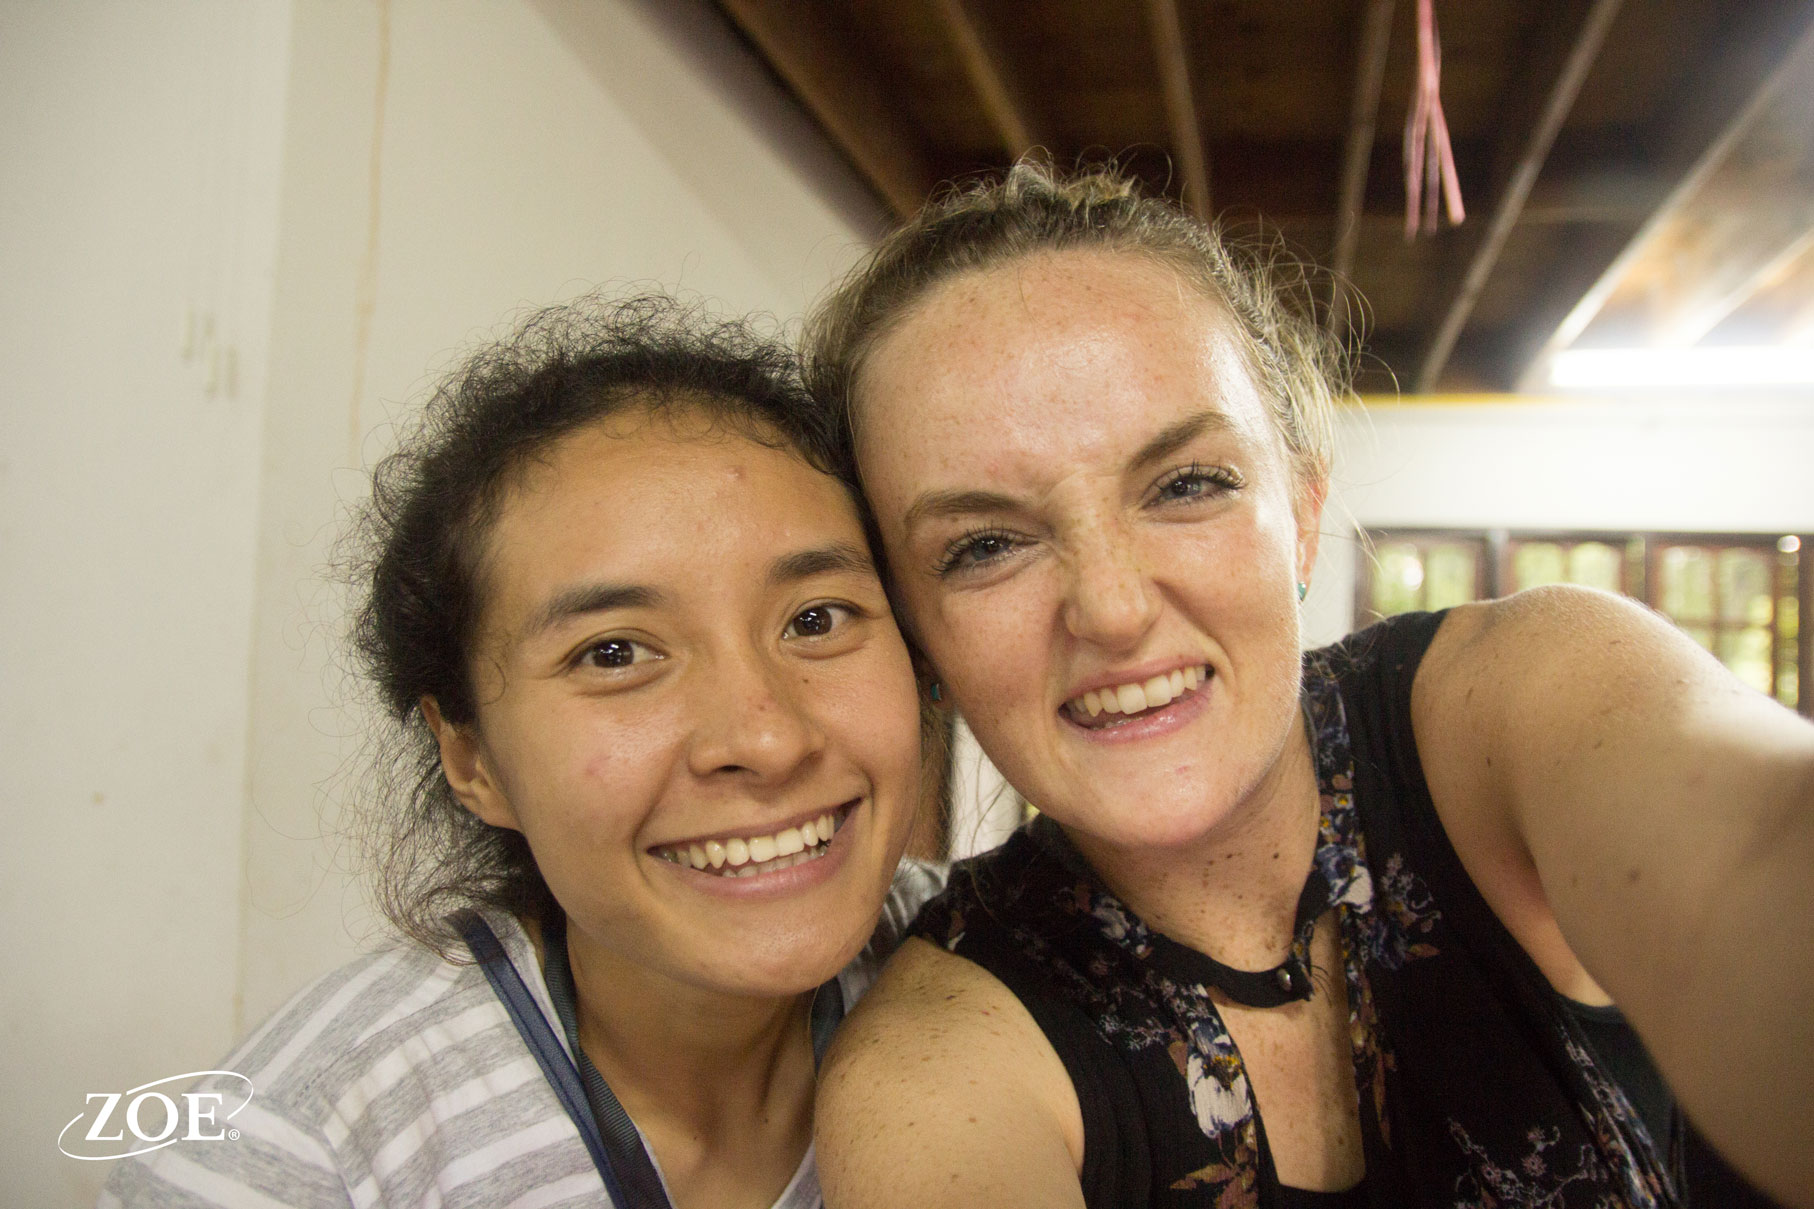 One of our Thai staff, Lek, and Abigail handled the SNACKS for youth camp. Lots of coordinating, laughter, and business.